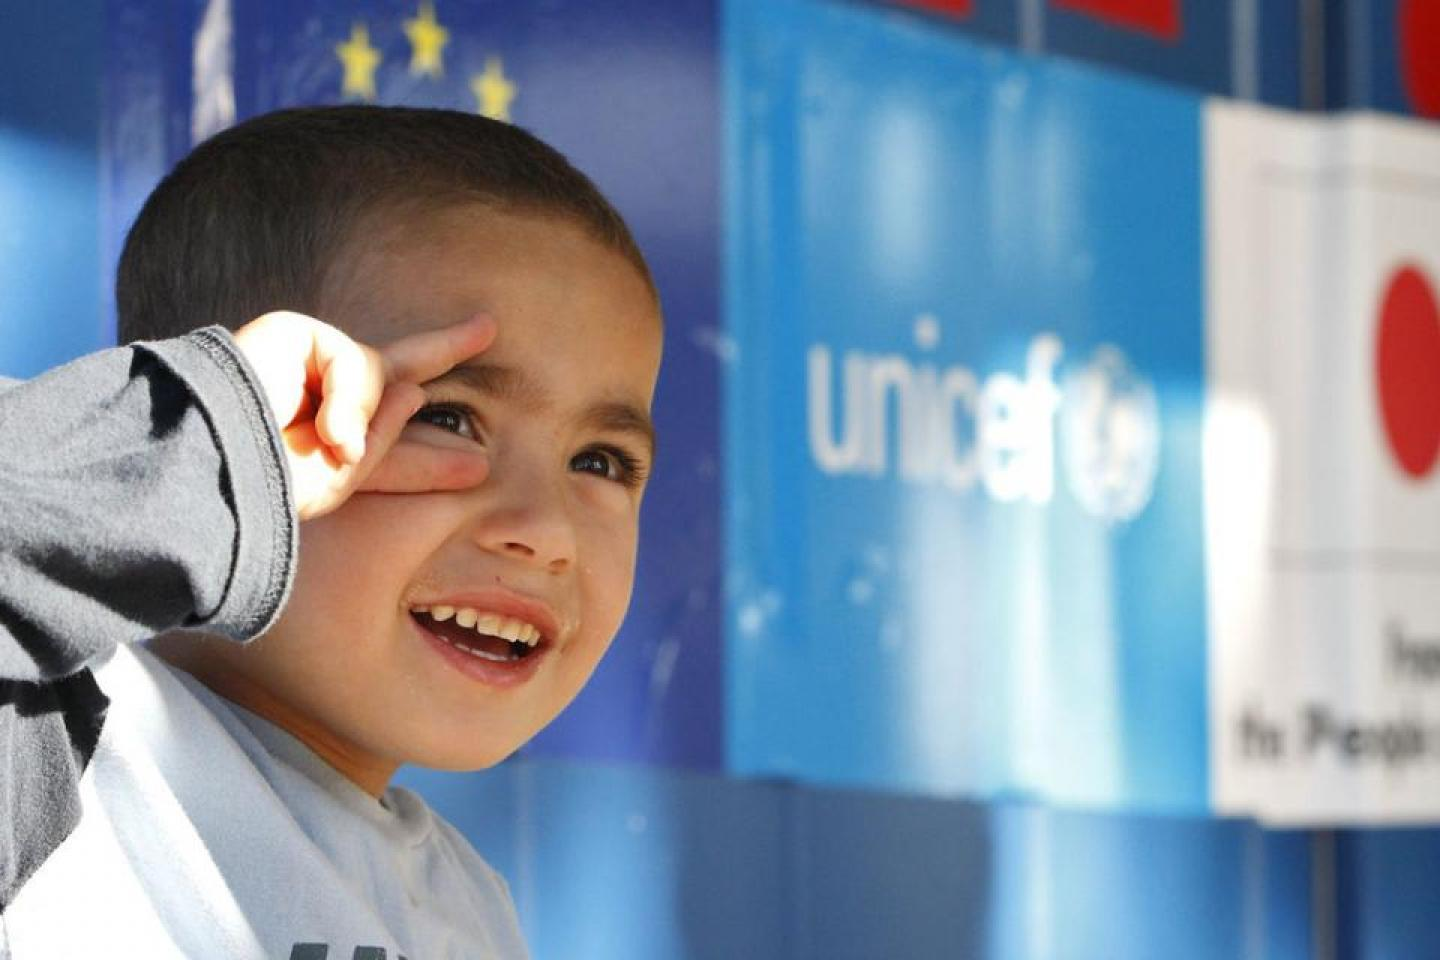 Child smiling and posing for a photo in front of the UNICEF and partners' banners